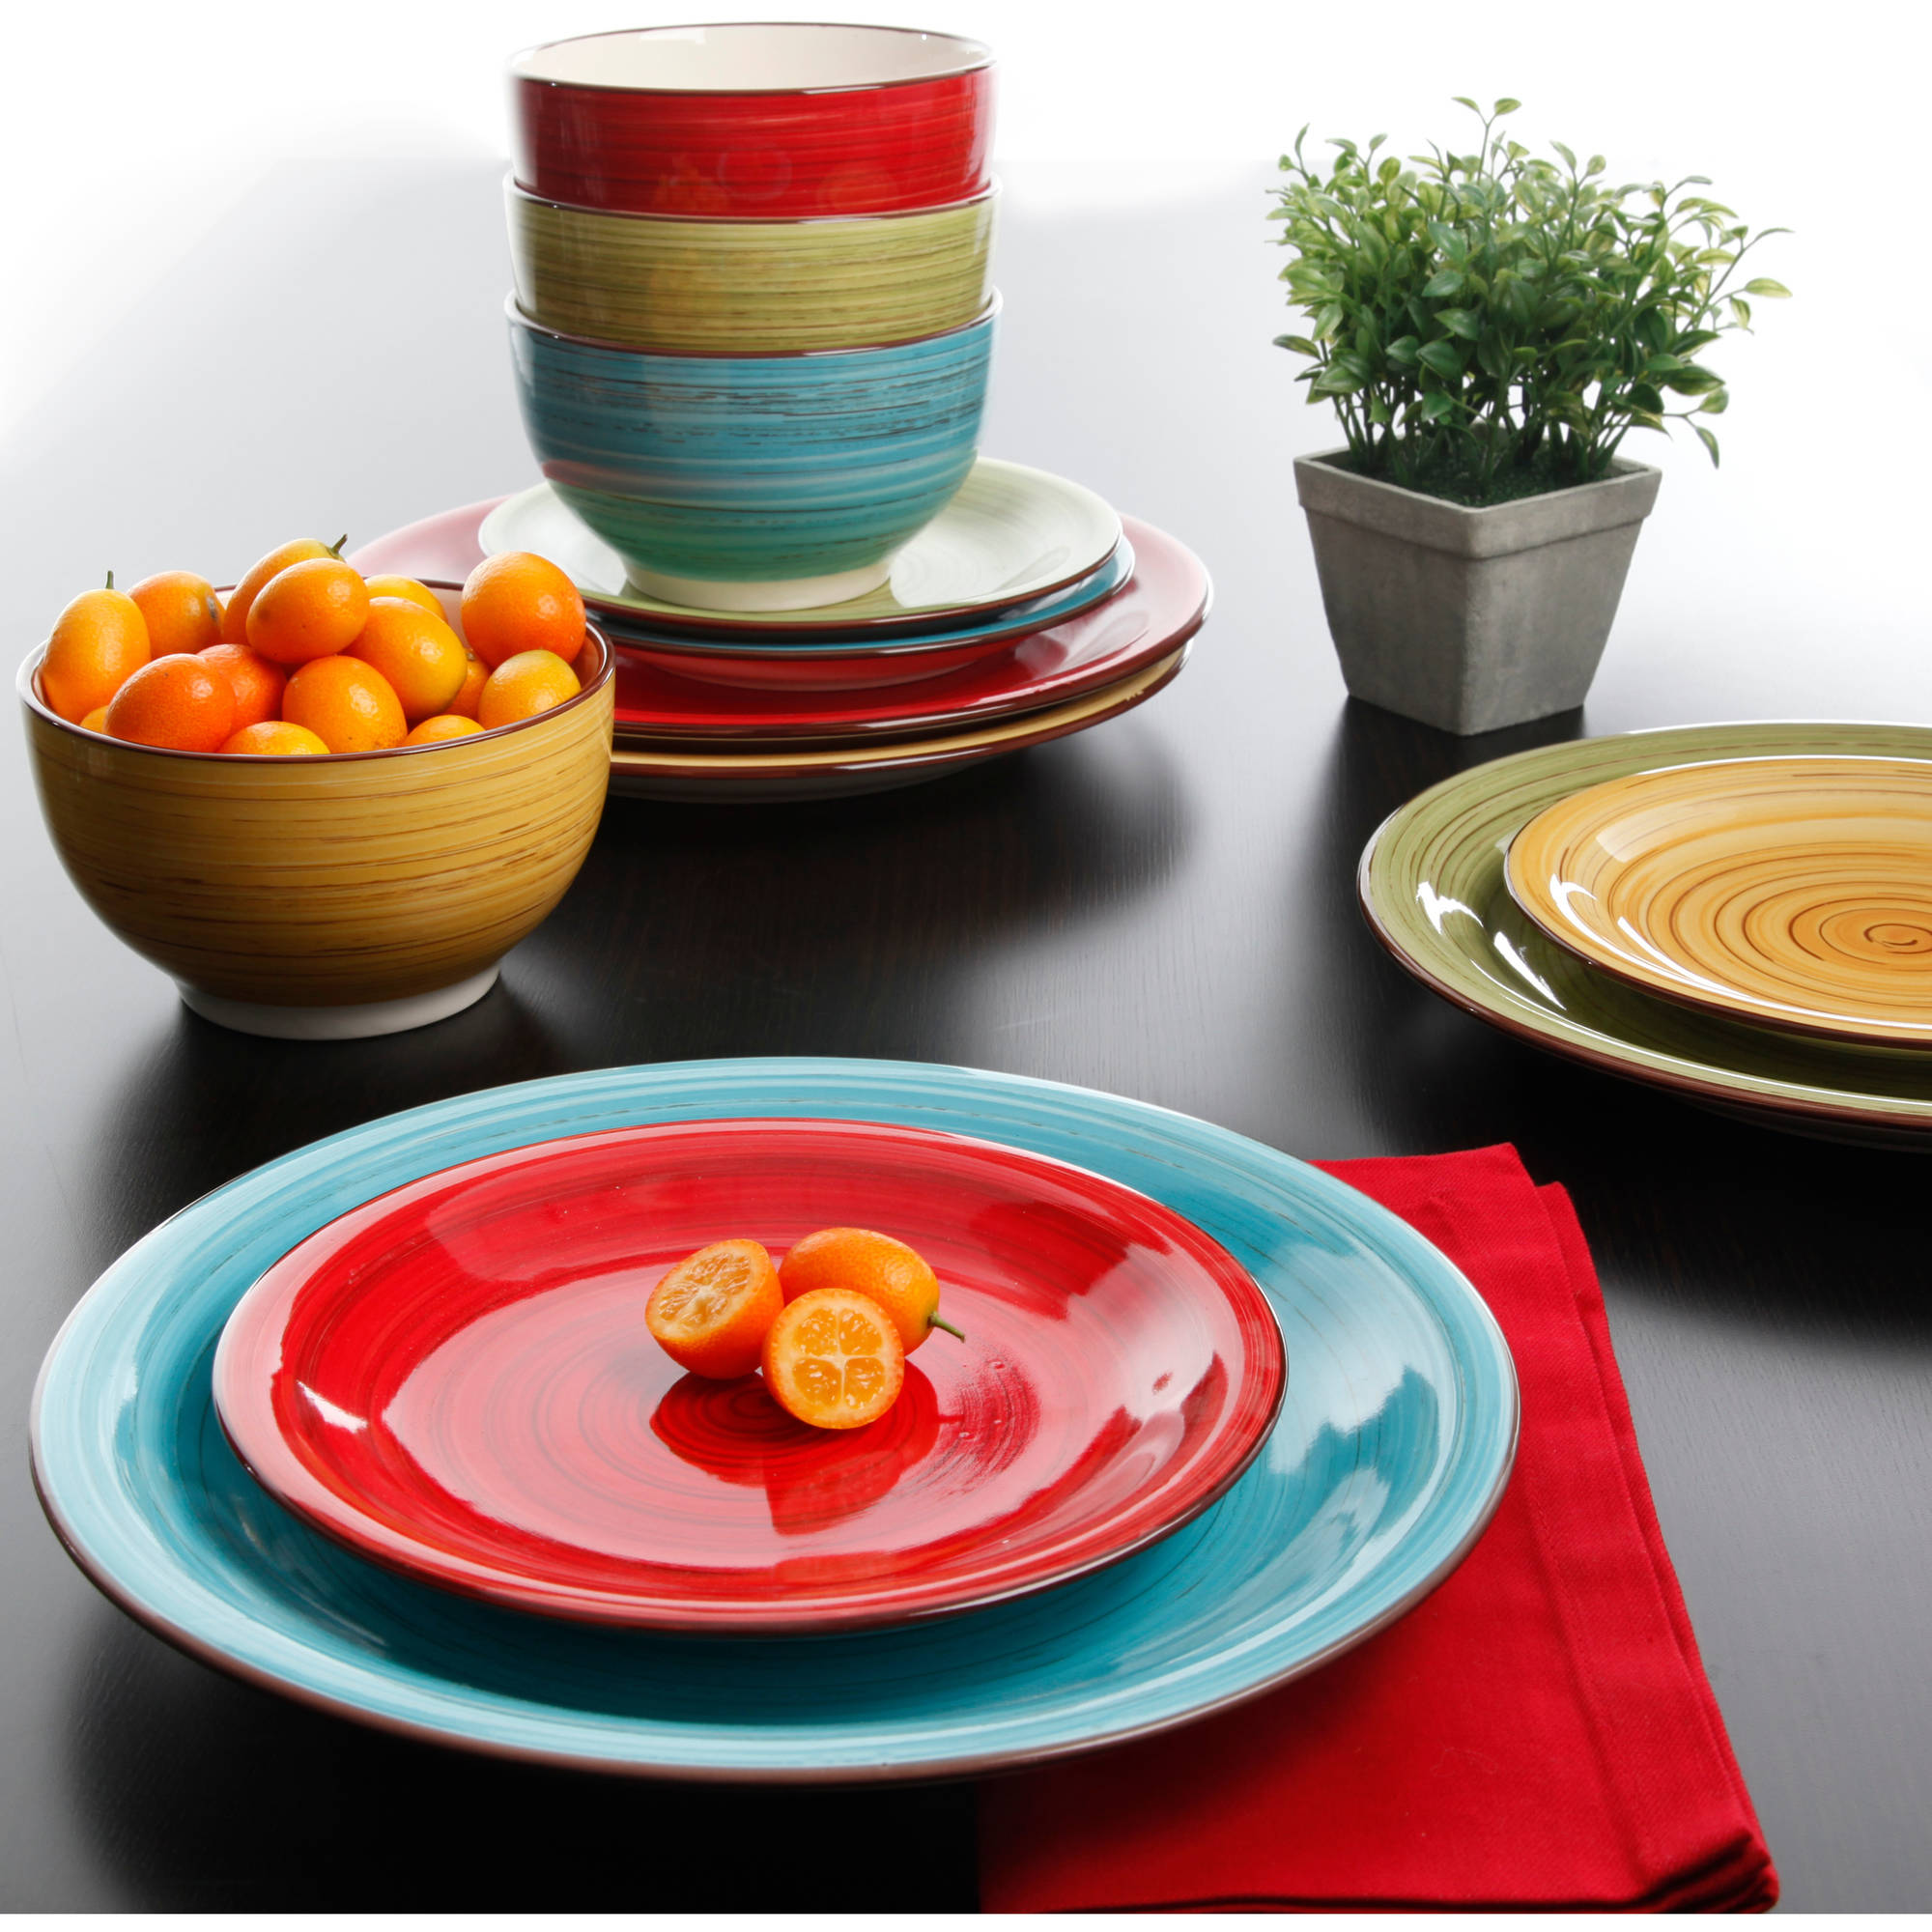 Better Homes & Gardens Festival Dinnerware, Assorted Colors, Set of 12